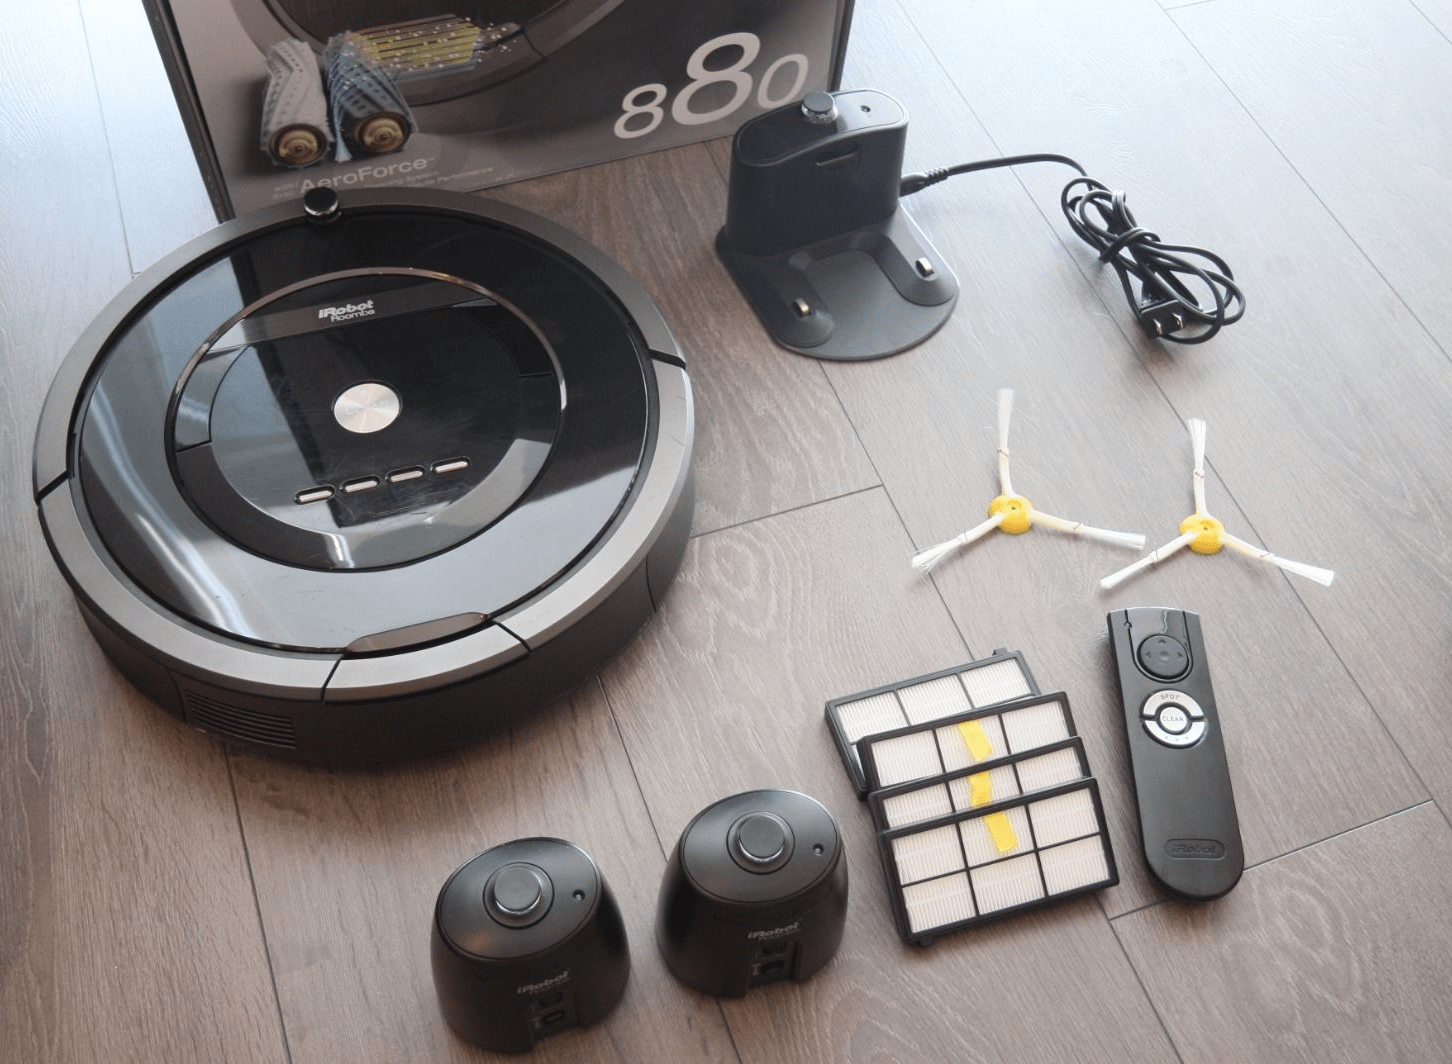 roomba 880 review - the 6th generation of irobot robovacs